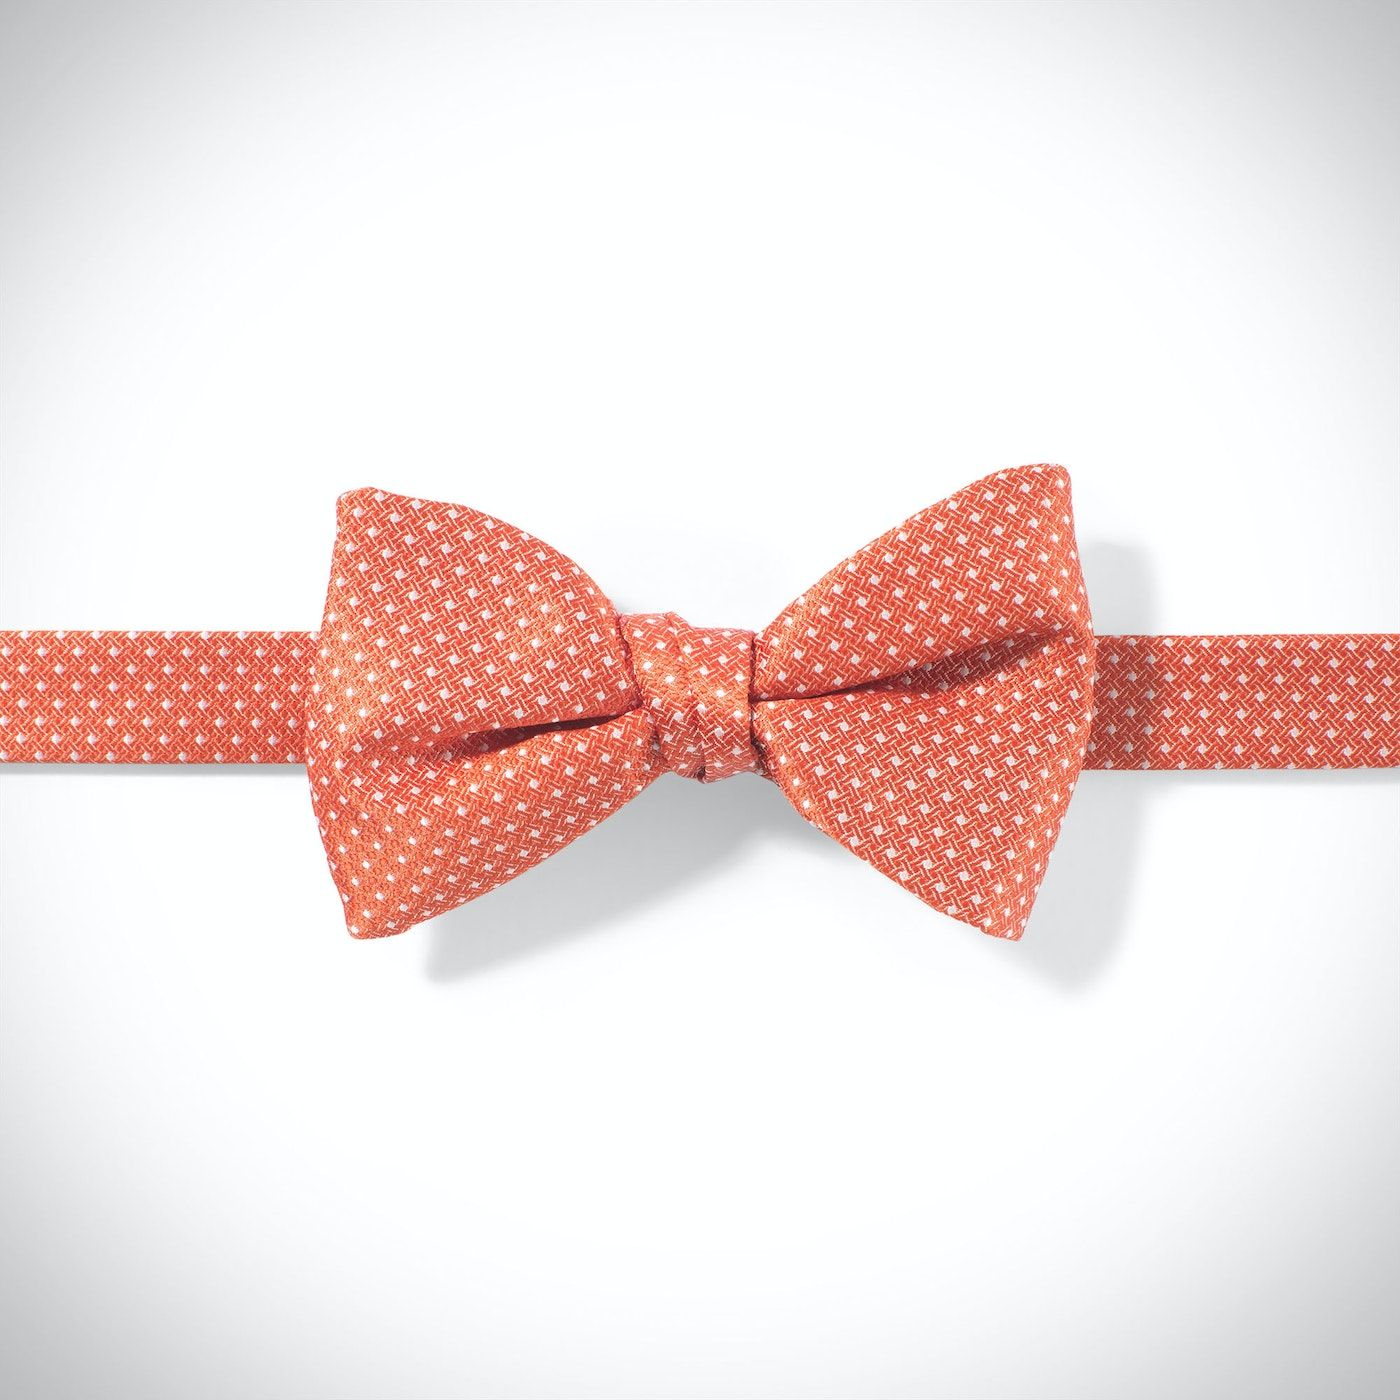 Jalapeno Dark Orange and White Pin Dot Pre-tied Bow Tie